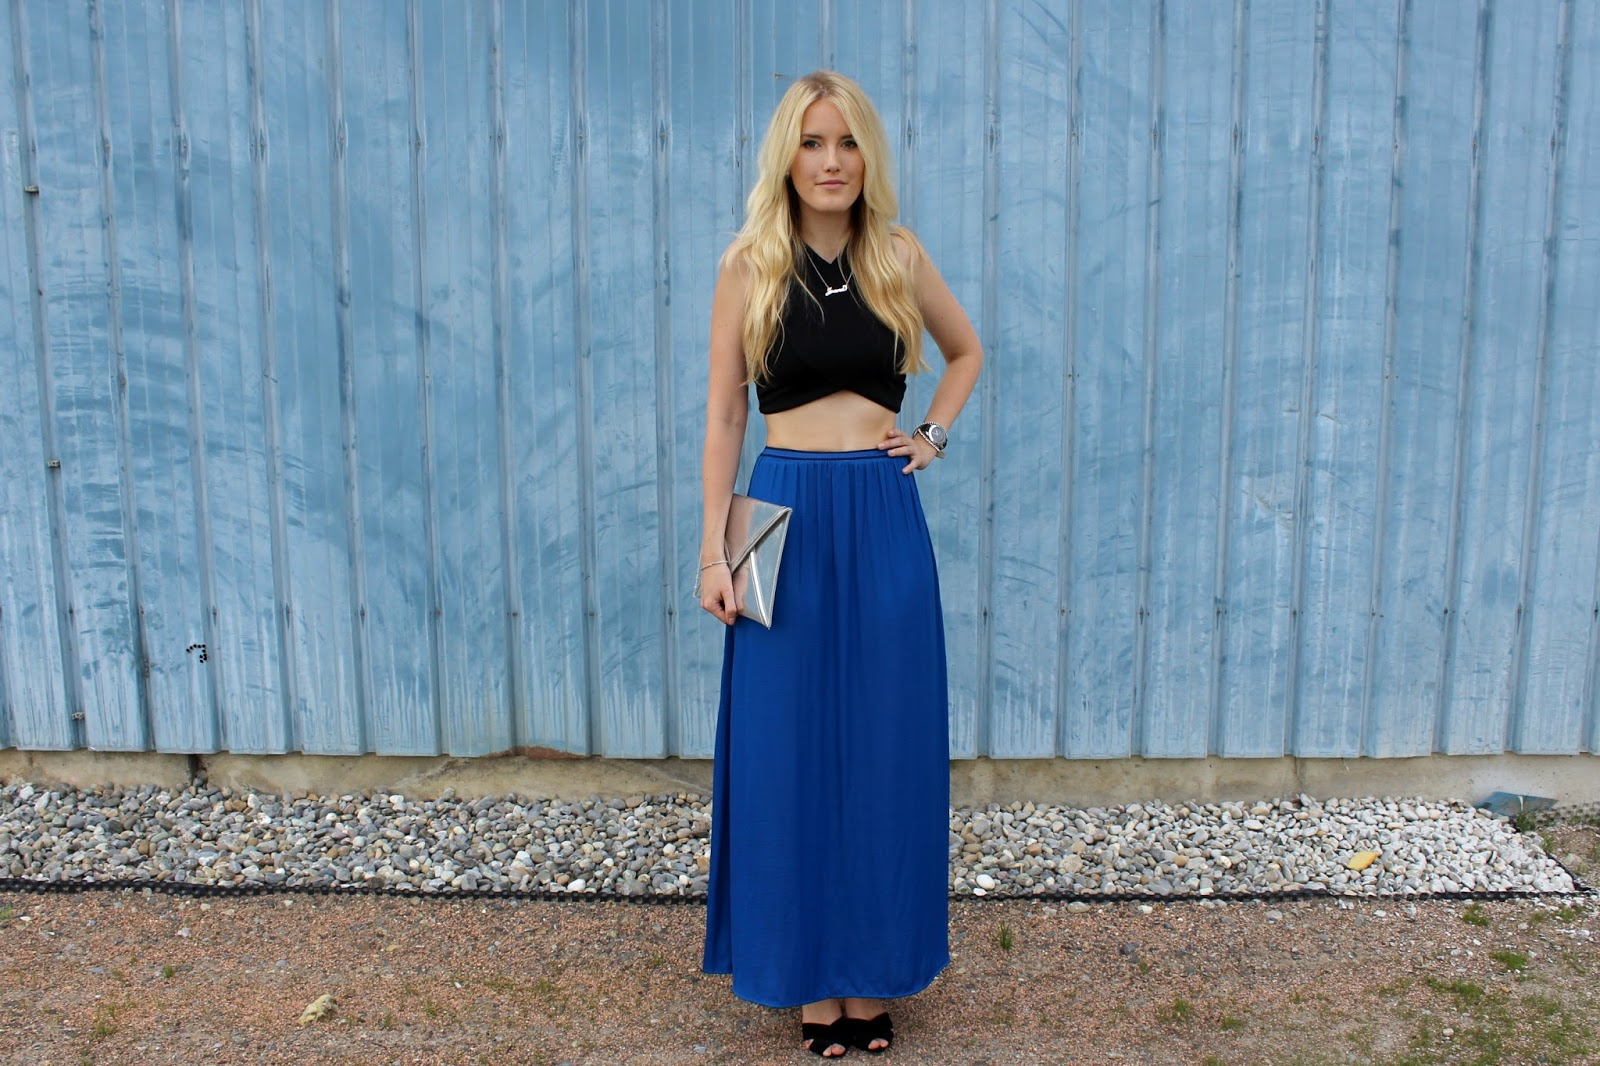 TheBlondeLion Outfit Namenskette Carrie necklace SATC Sex and the City